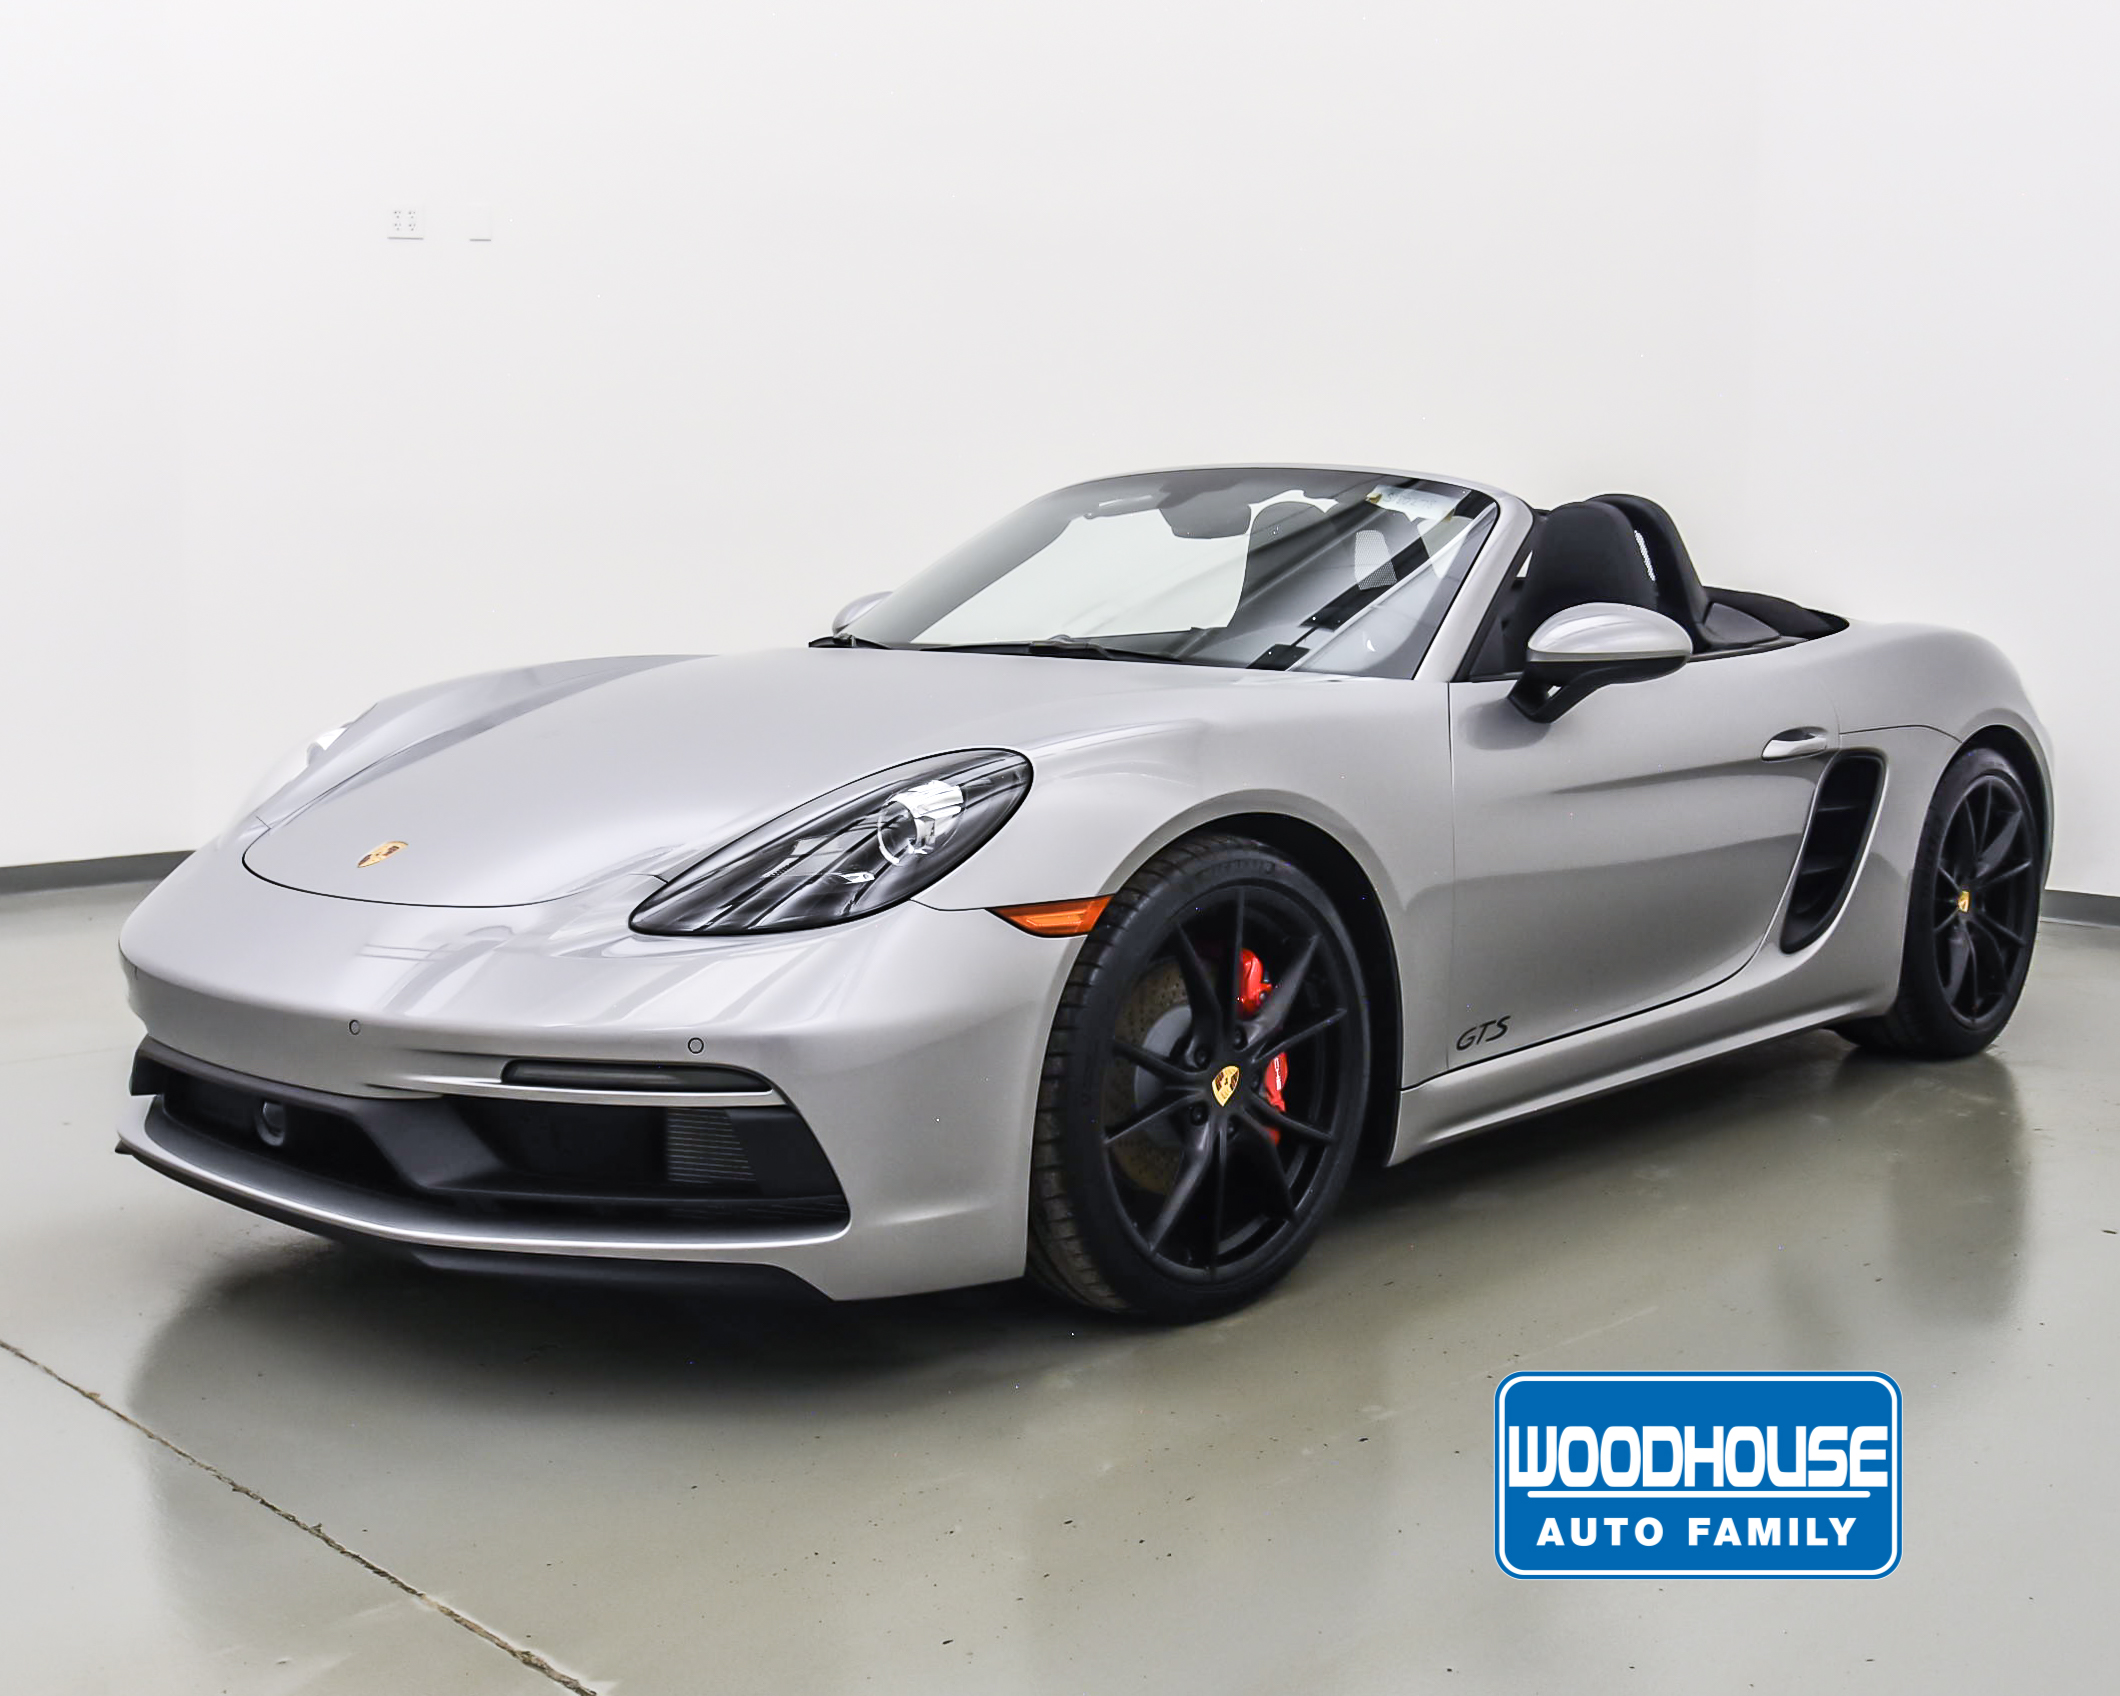 Woodhouse New 2018 Porsche 718 Boxster For Sale Porsche